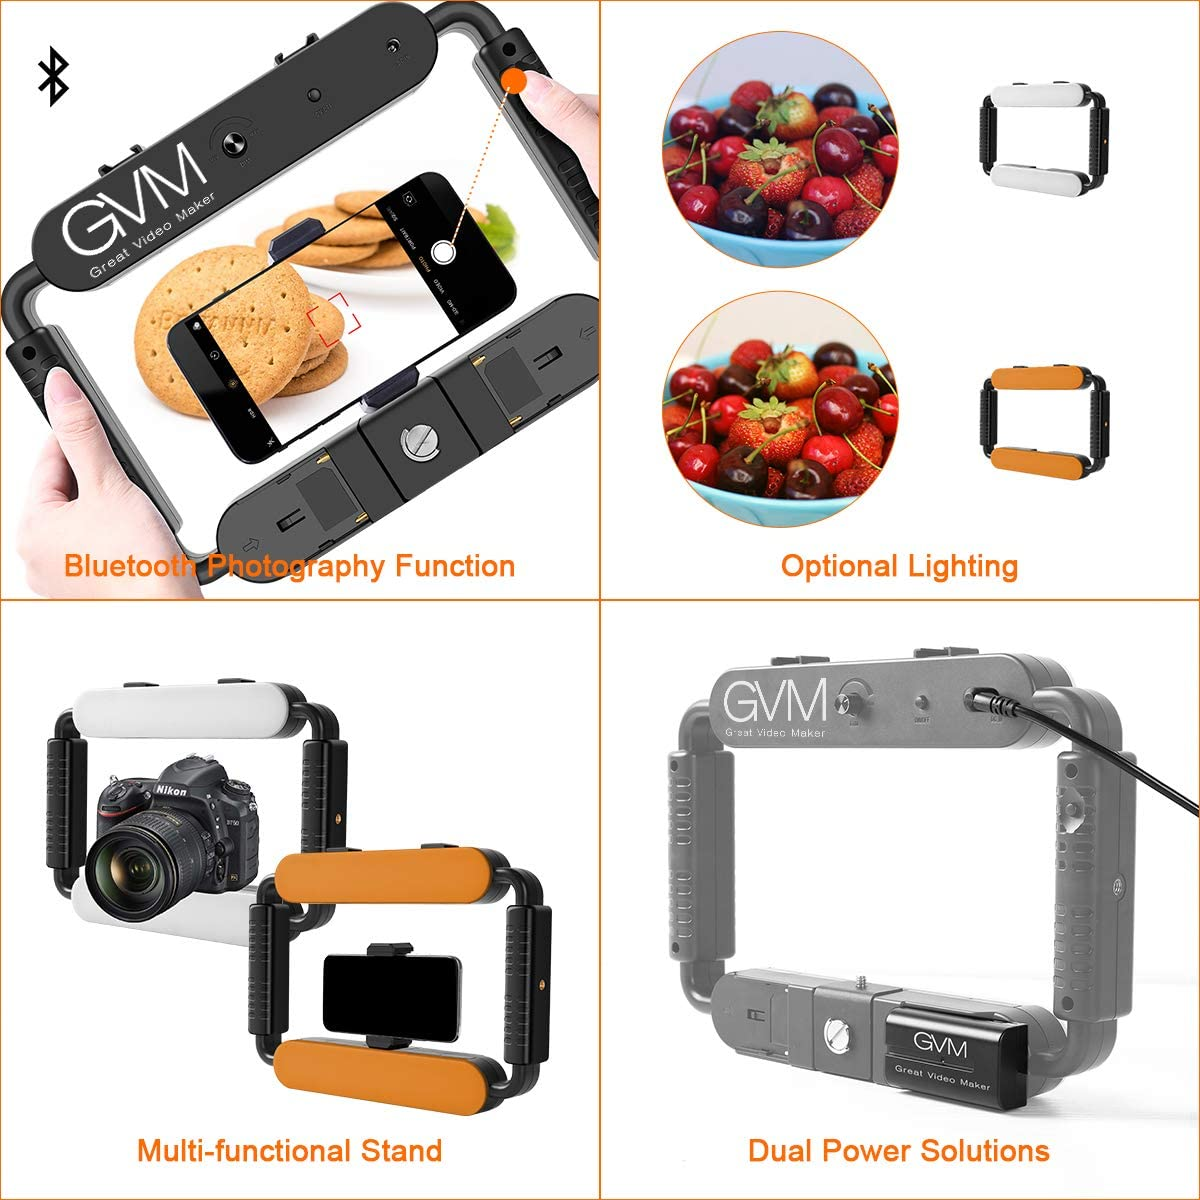 GVM 5600K Selfie Cell Phone Ring Light YouTube Makeup Self-Portrait Shooting with Bluetooth Smartphone Video Rig /& Phone Video Stabilizer for Camera Smartphone